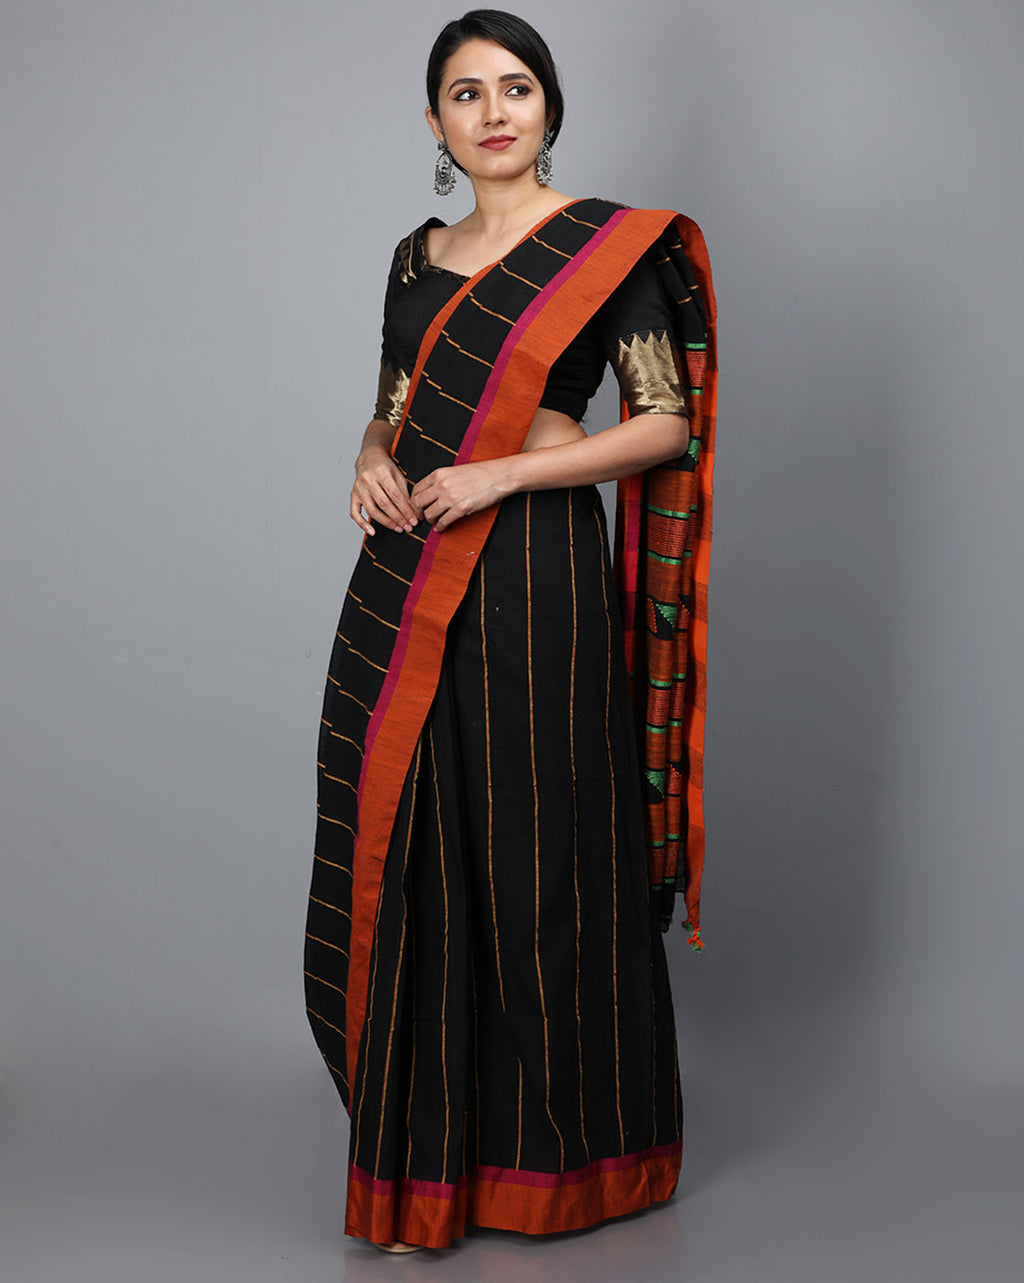 Phulia Cotton with Vertical Stripes Thread Embroidery - Black